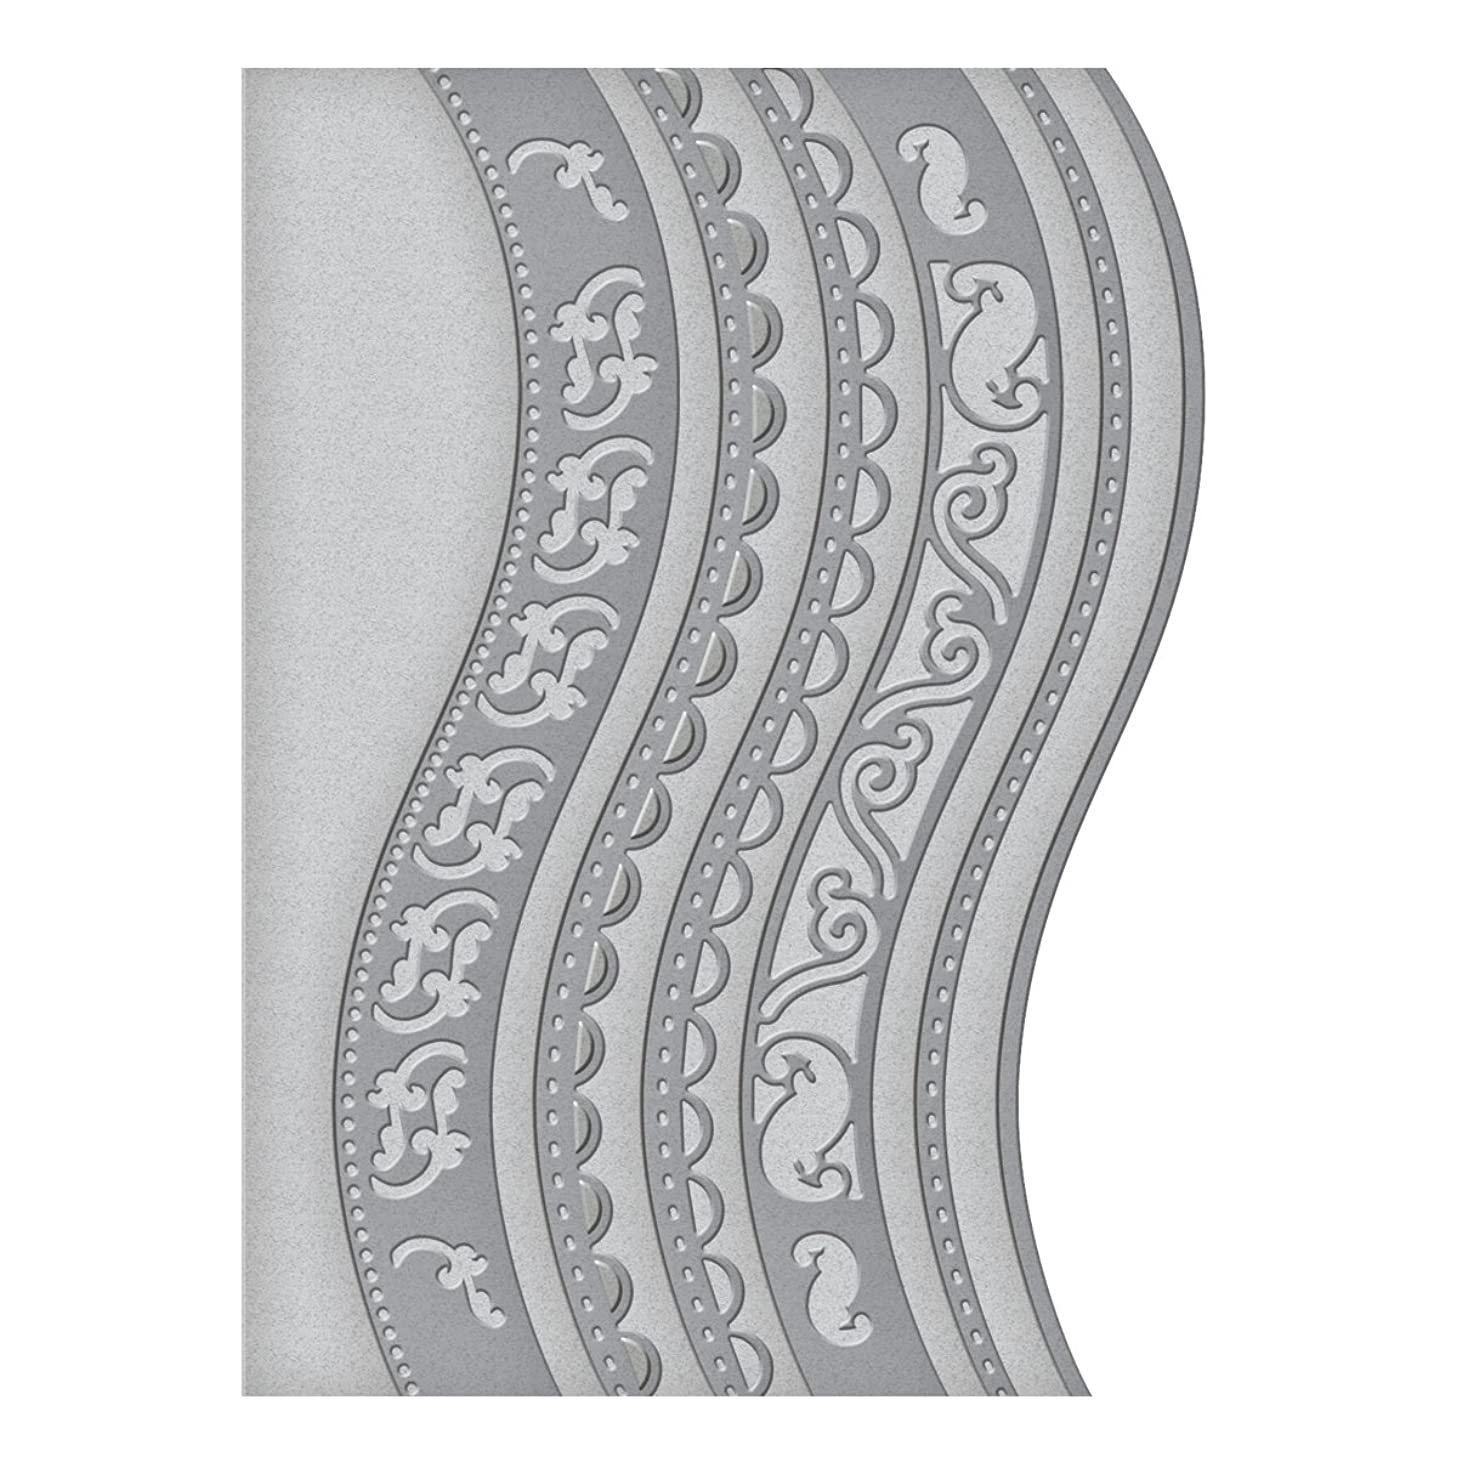 Spellbinders S5-180 A2 Curved Borders One Card Creator Etched/Wafer Thin Dies